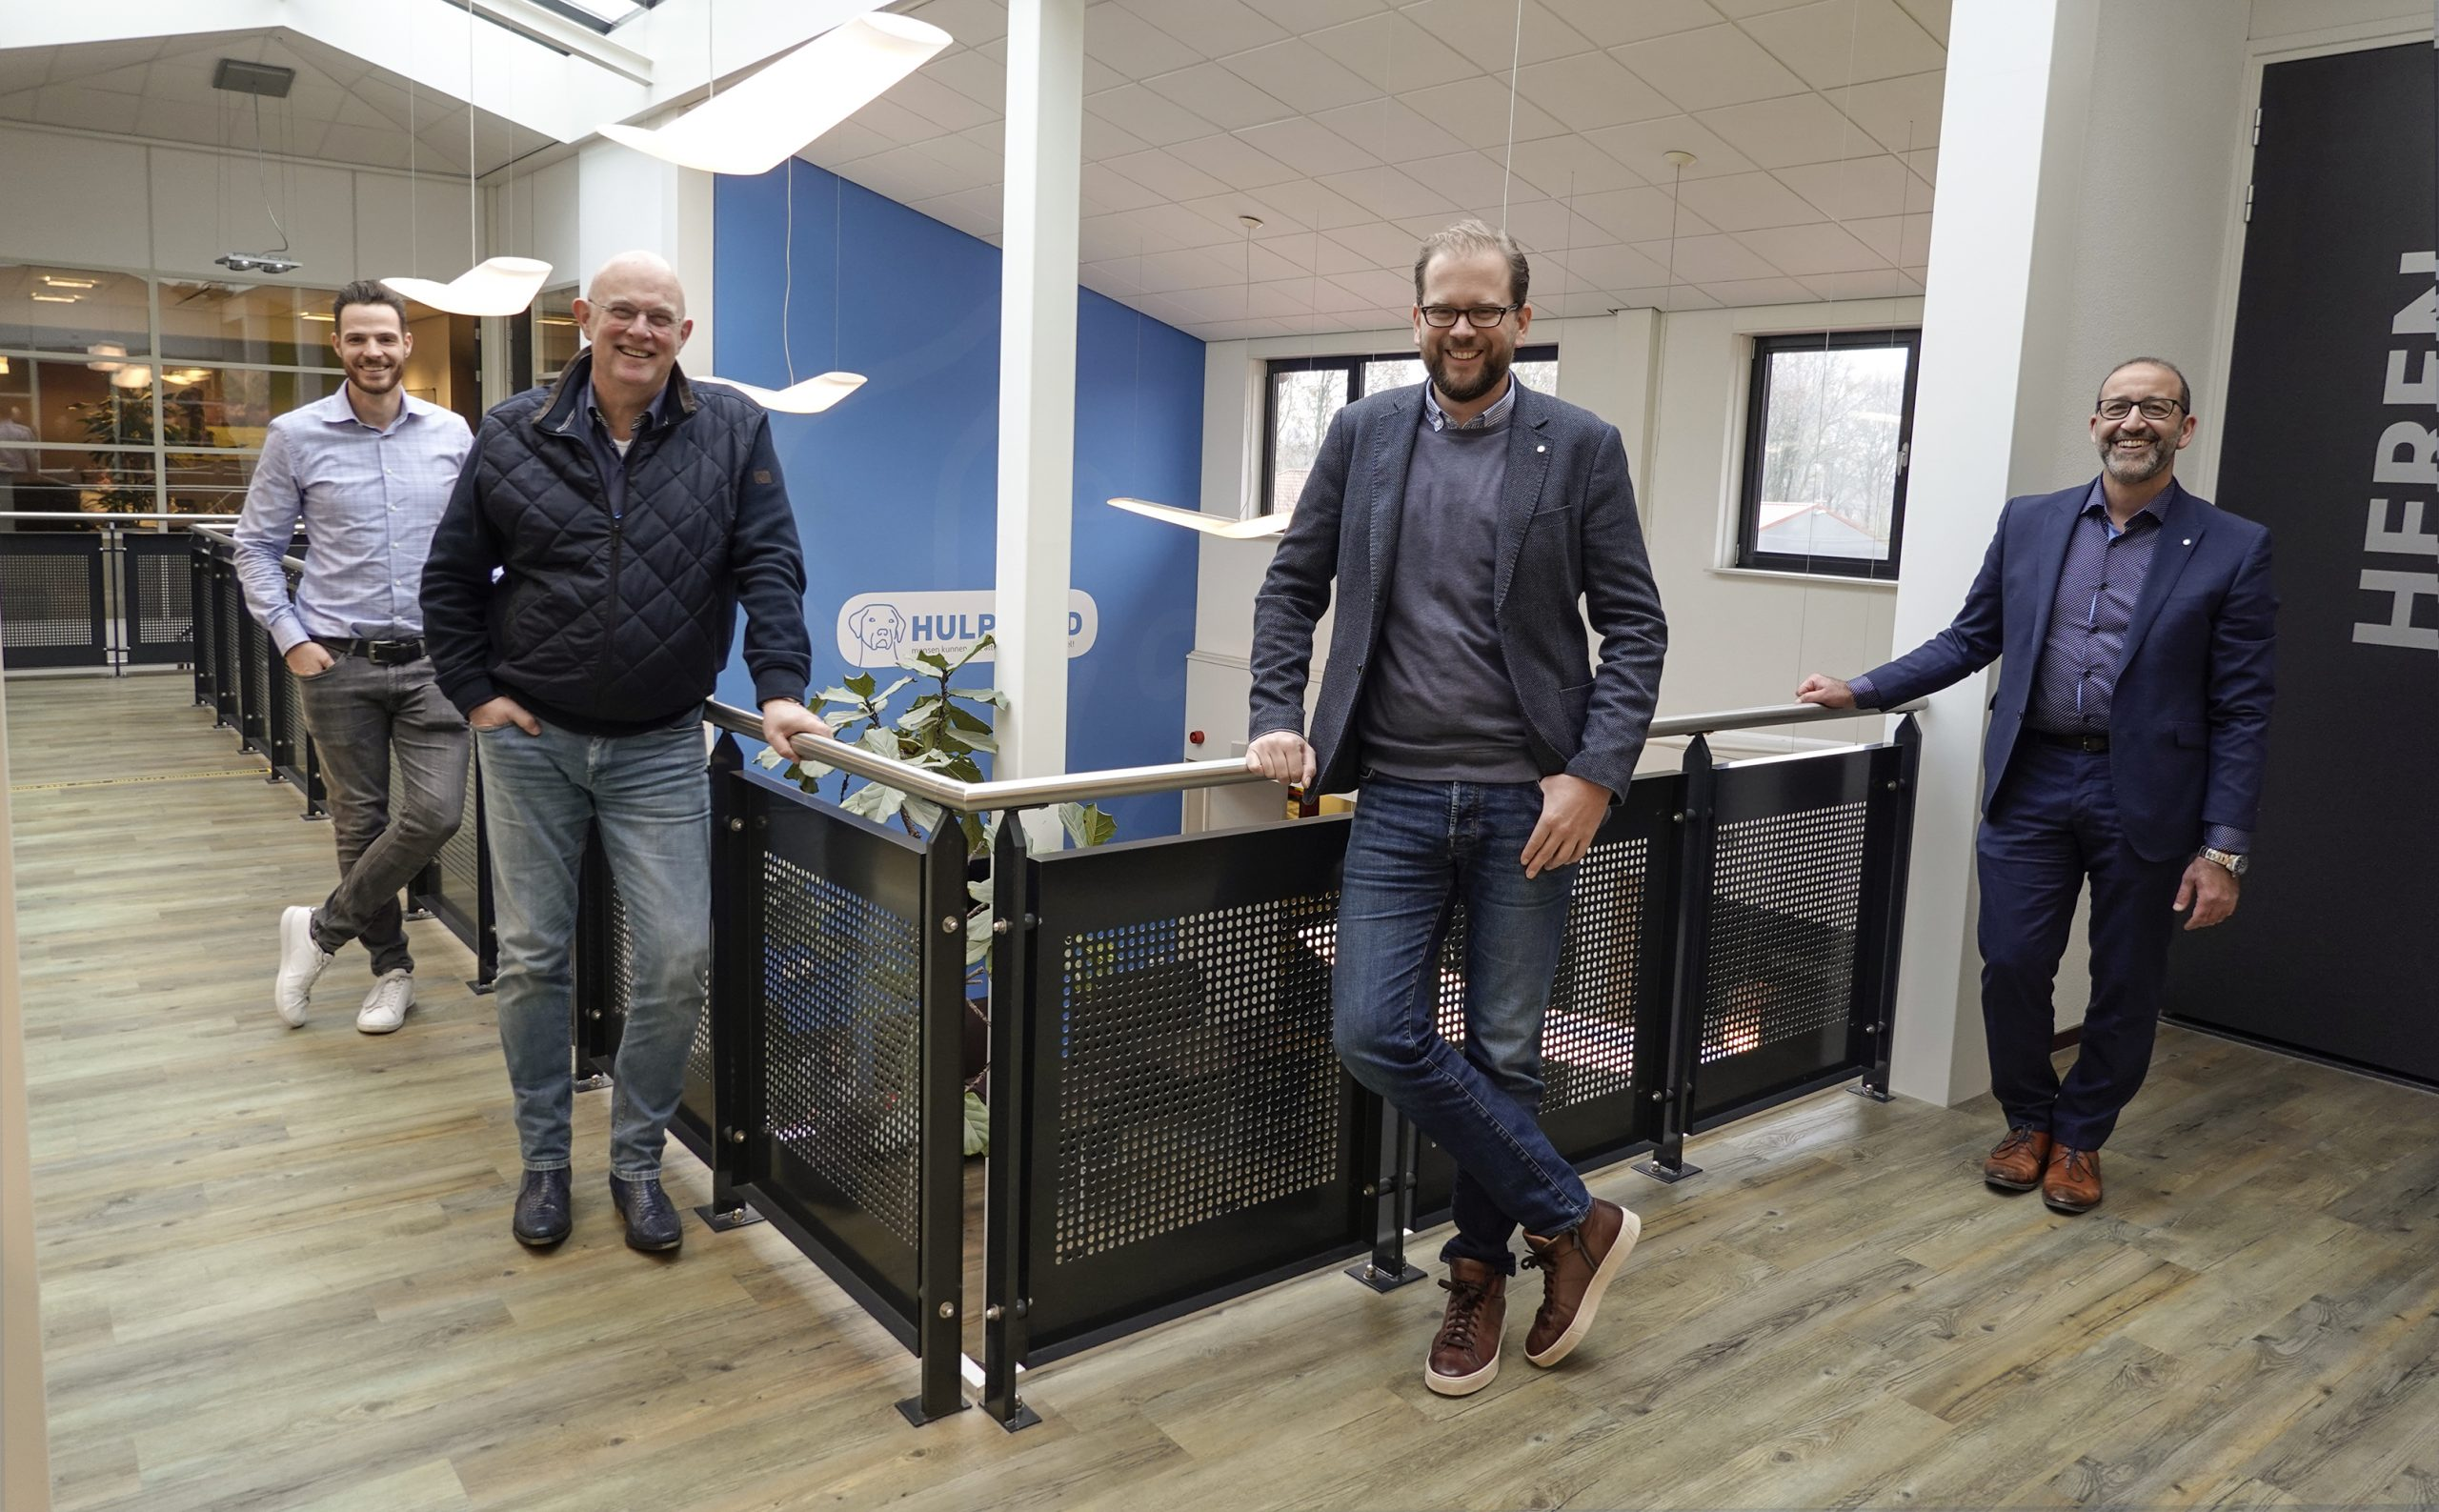 Xperity - Stichting Hulphond D365